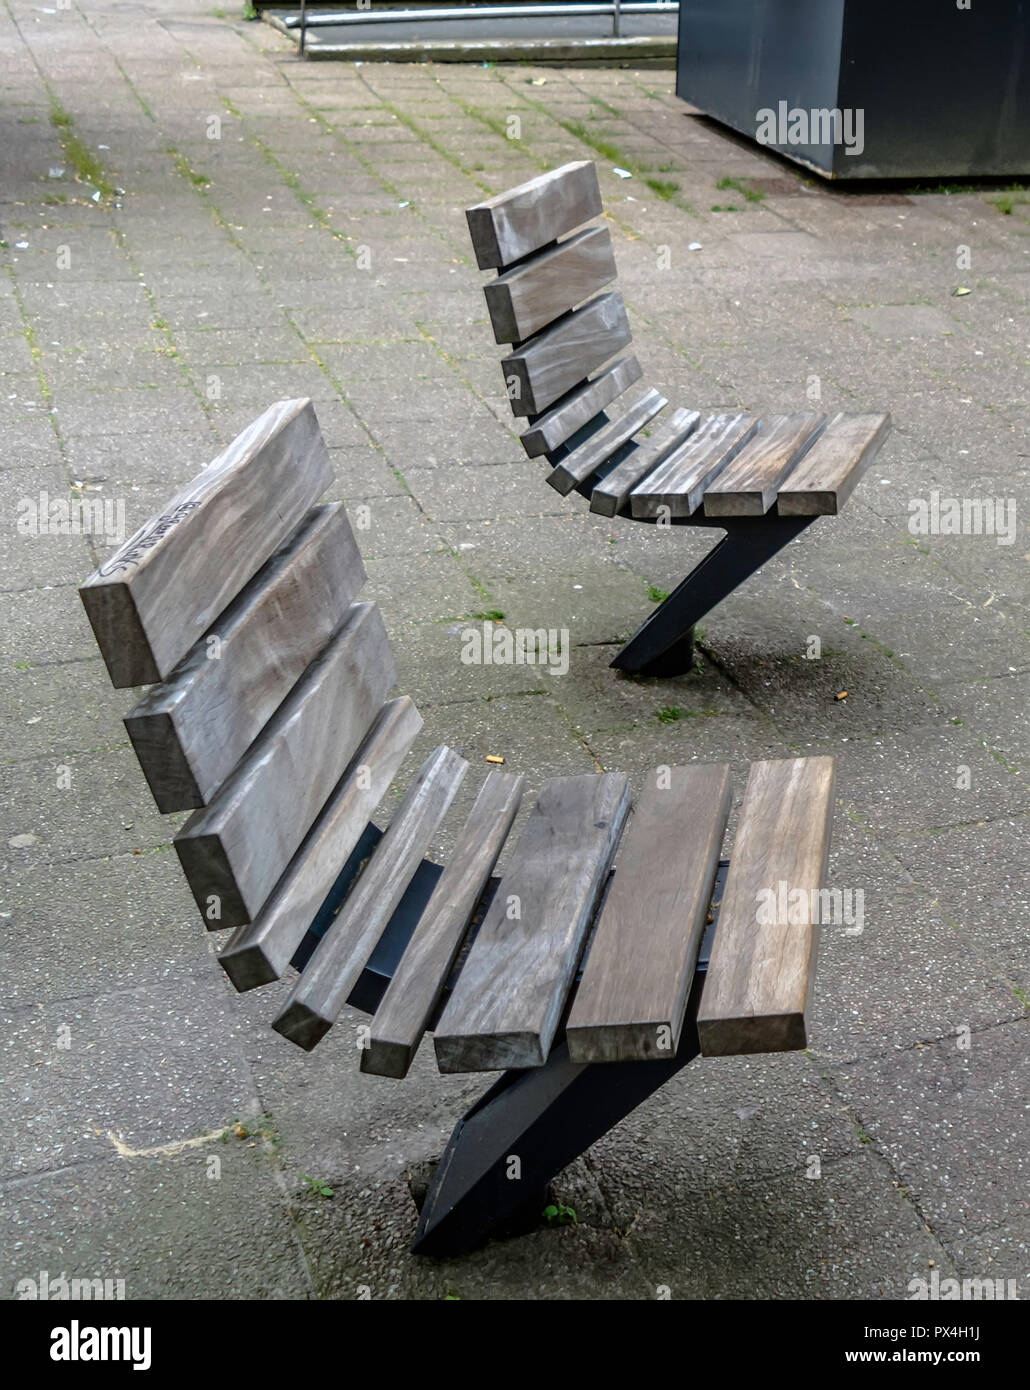 Practical and comfortable street furniture in Rotterdam, Netherlands. All these chairs can rotate on their axis and could be turned to any direction. - Stock Image